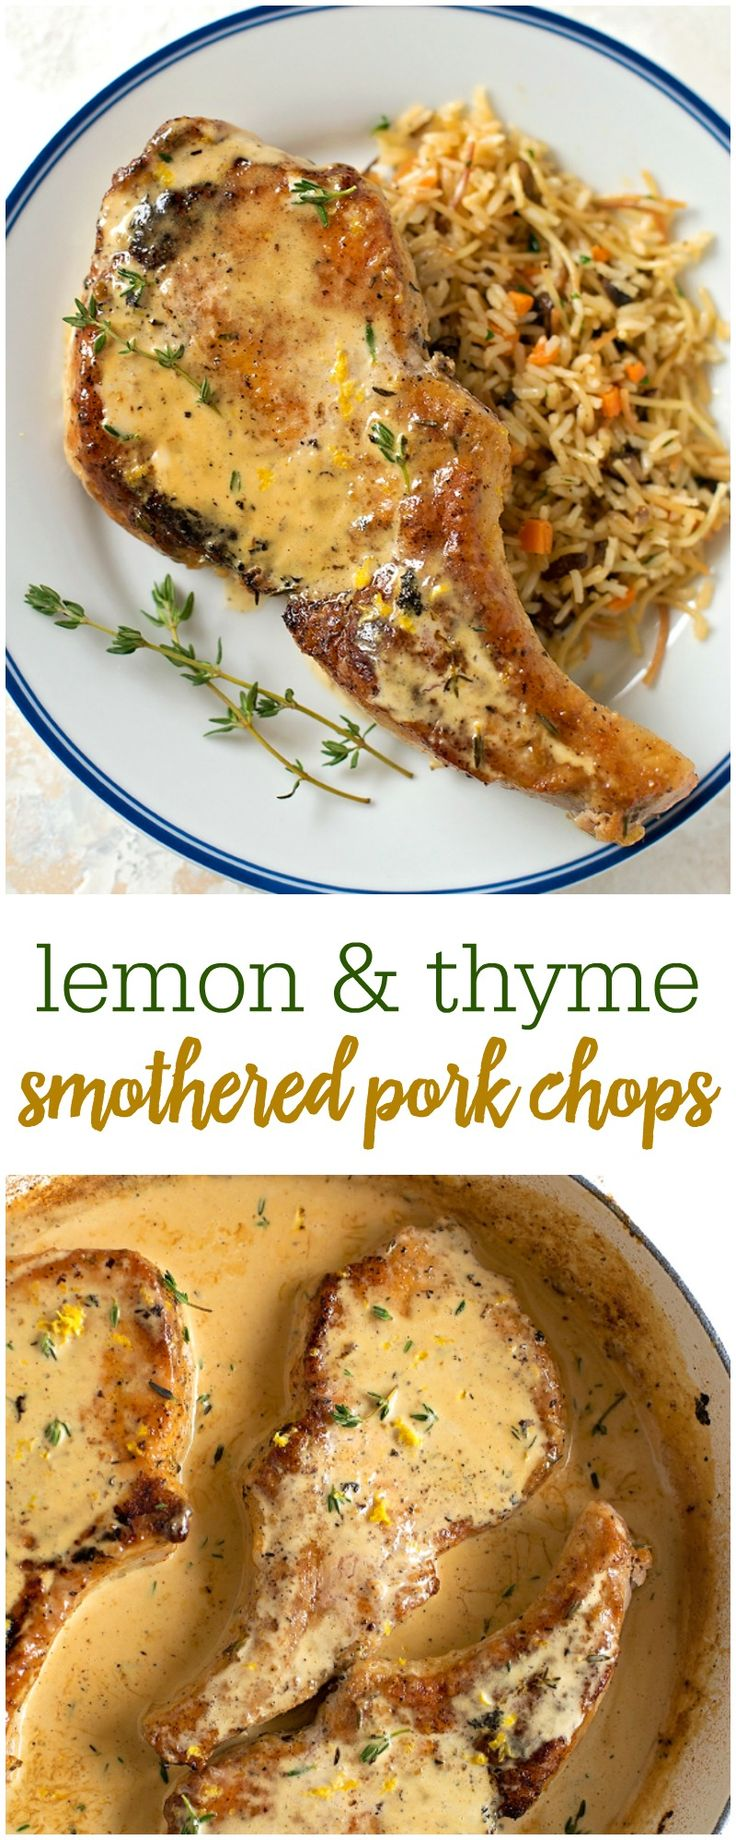 Different ways to cook pork chops - Creamy Lemon Thyme Smothered Pork Chops A Delicious And Flavorful Pork Chop Recipe That